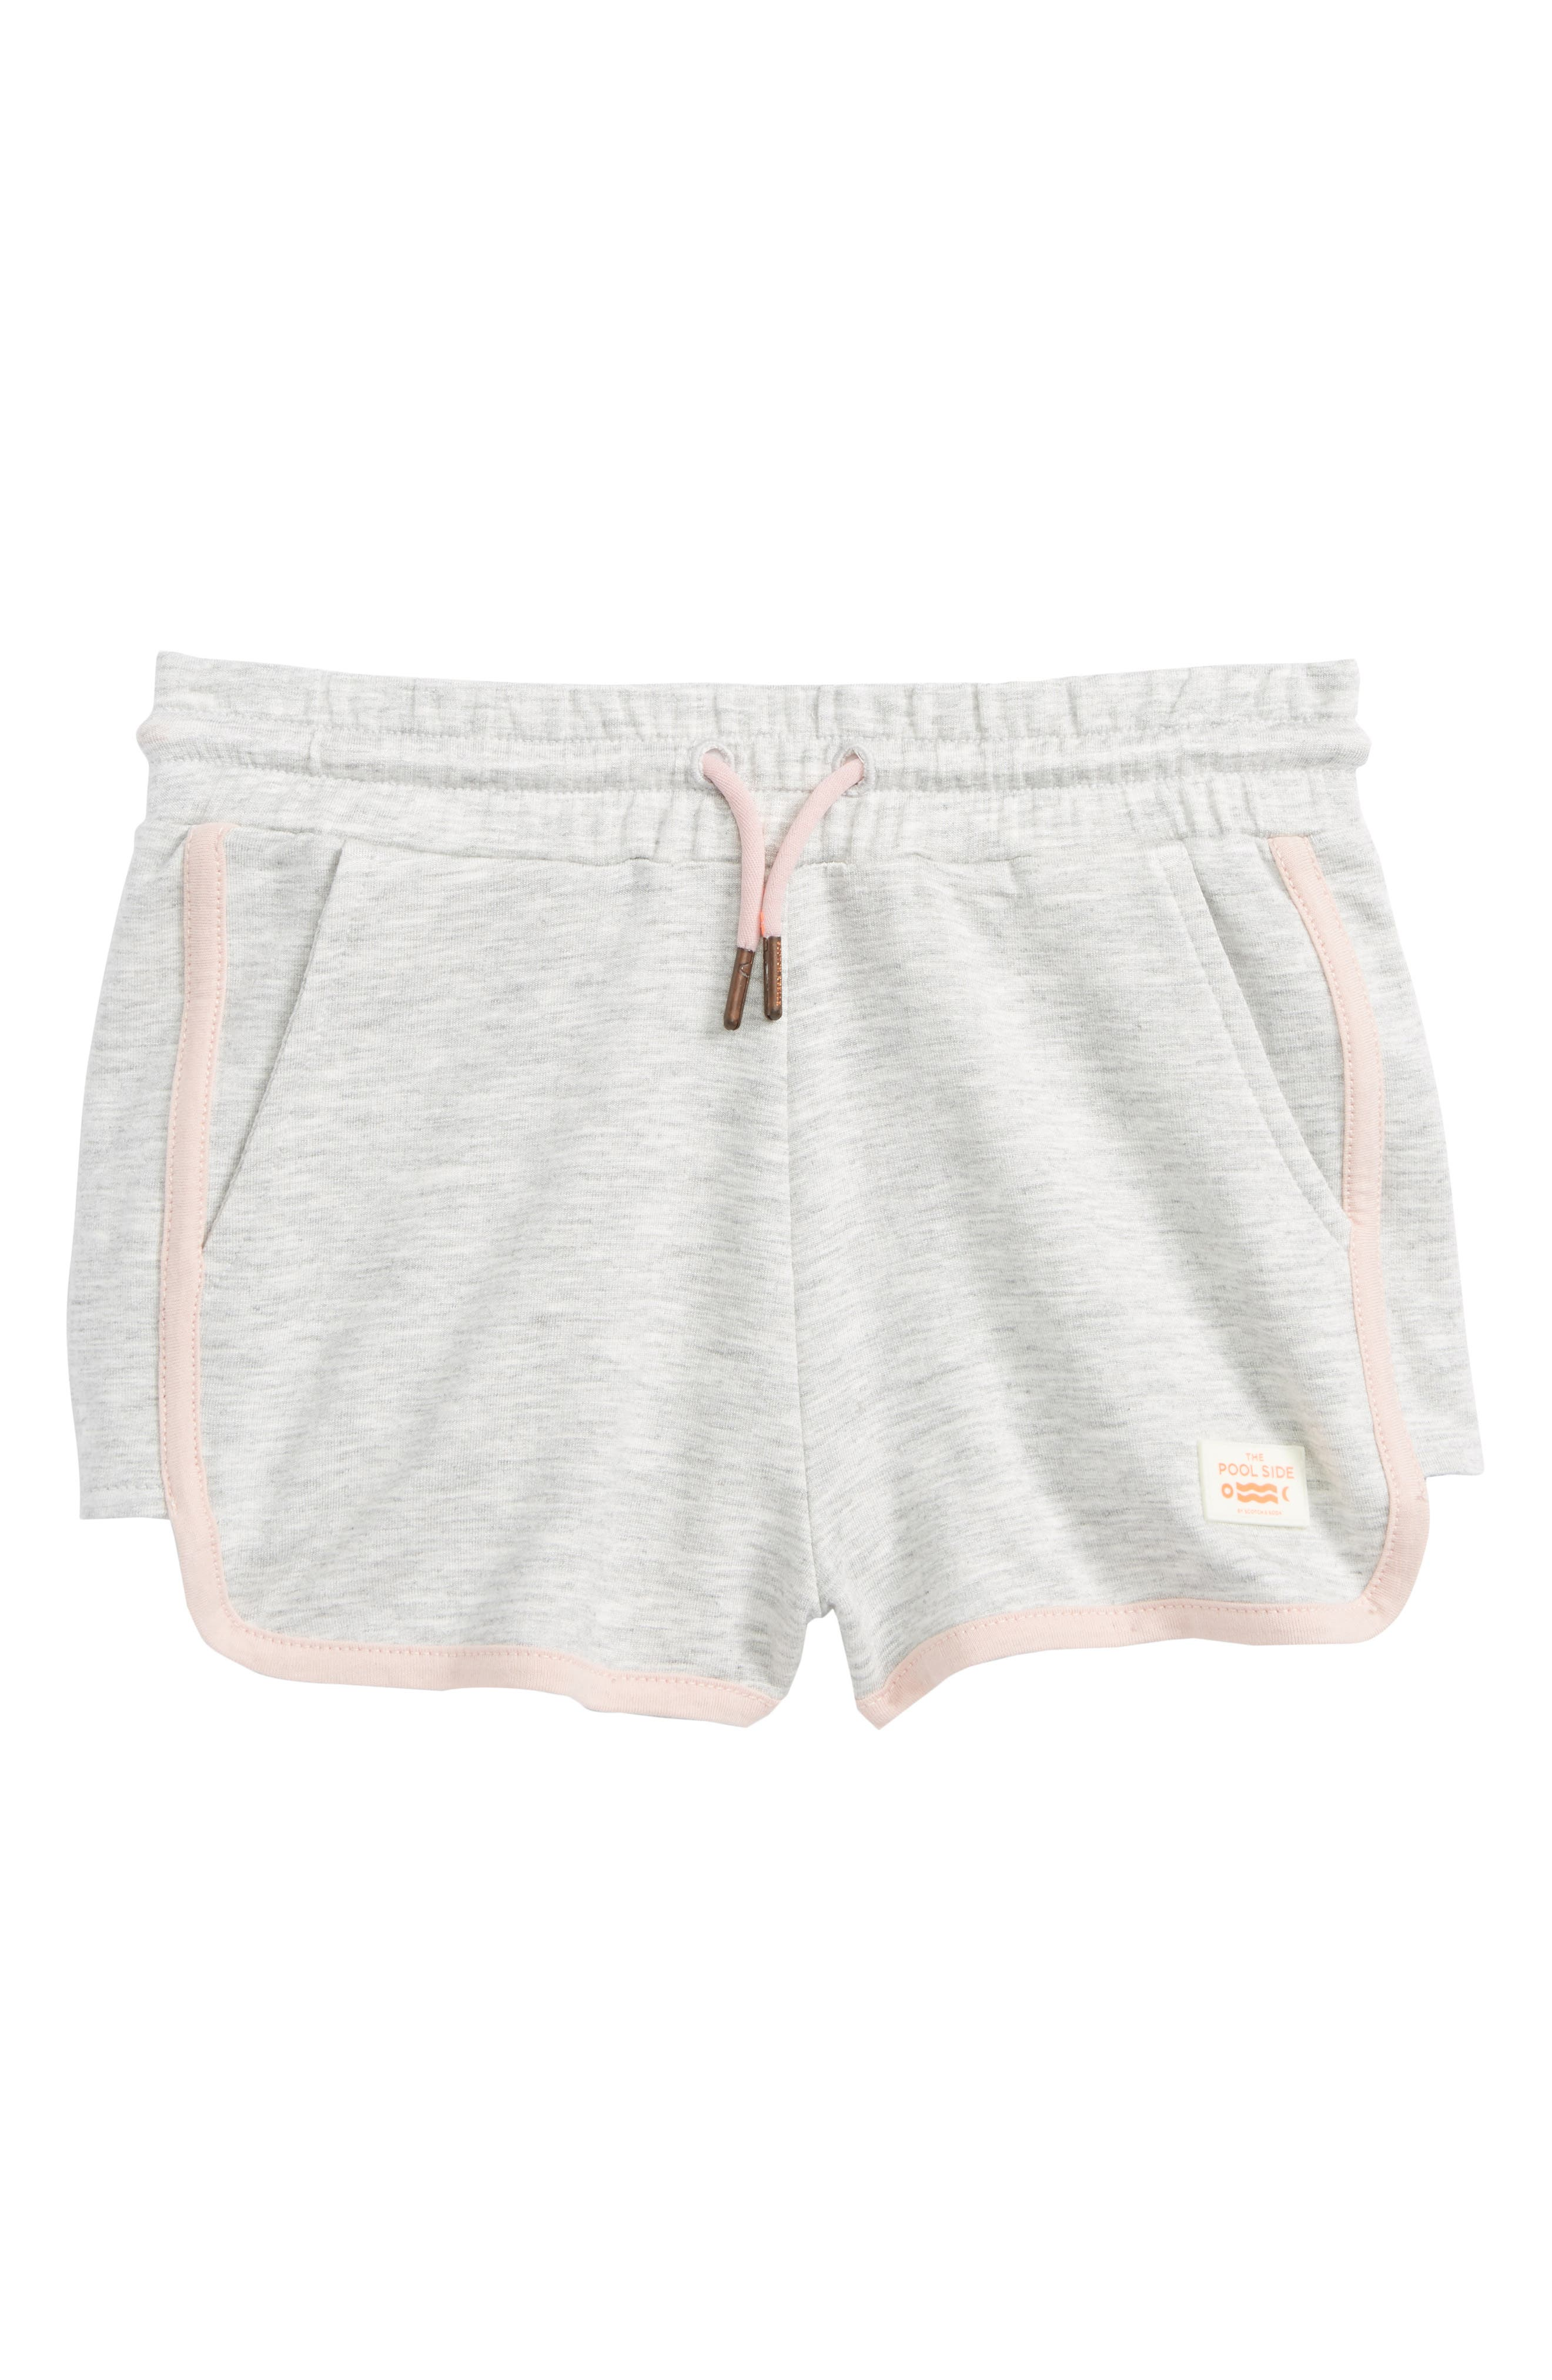 Scotch R'Belle The Pool Side Shorts,                         Main,                         color, 606 GREY MEL